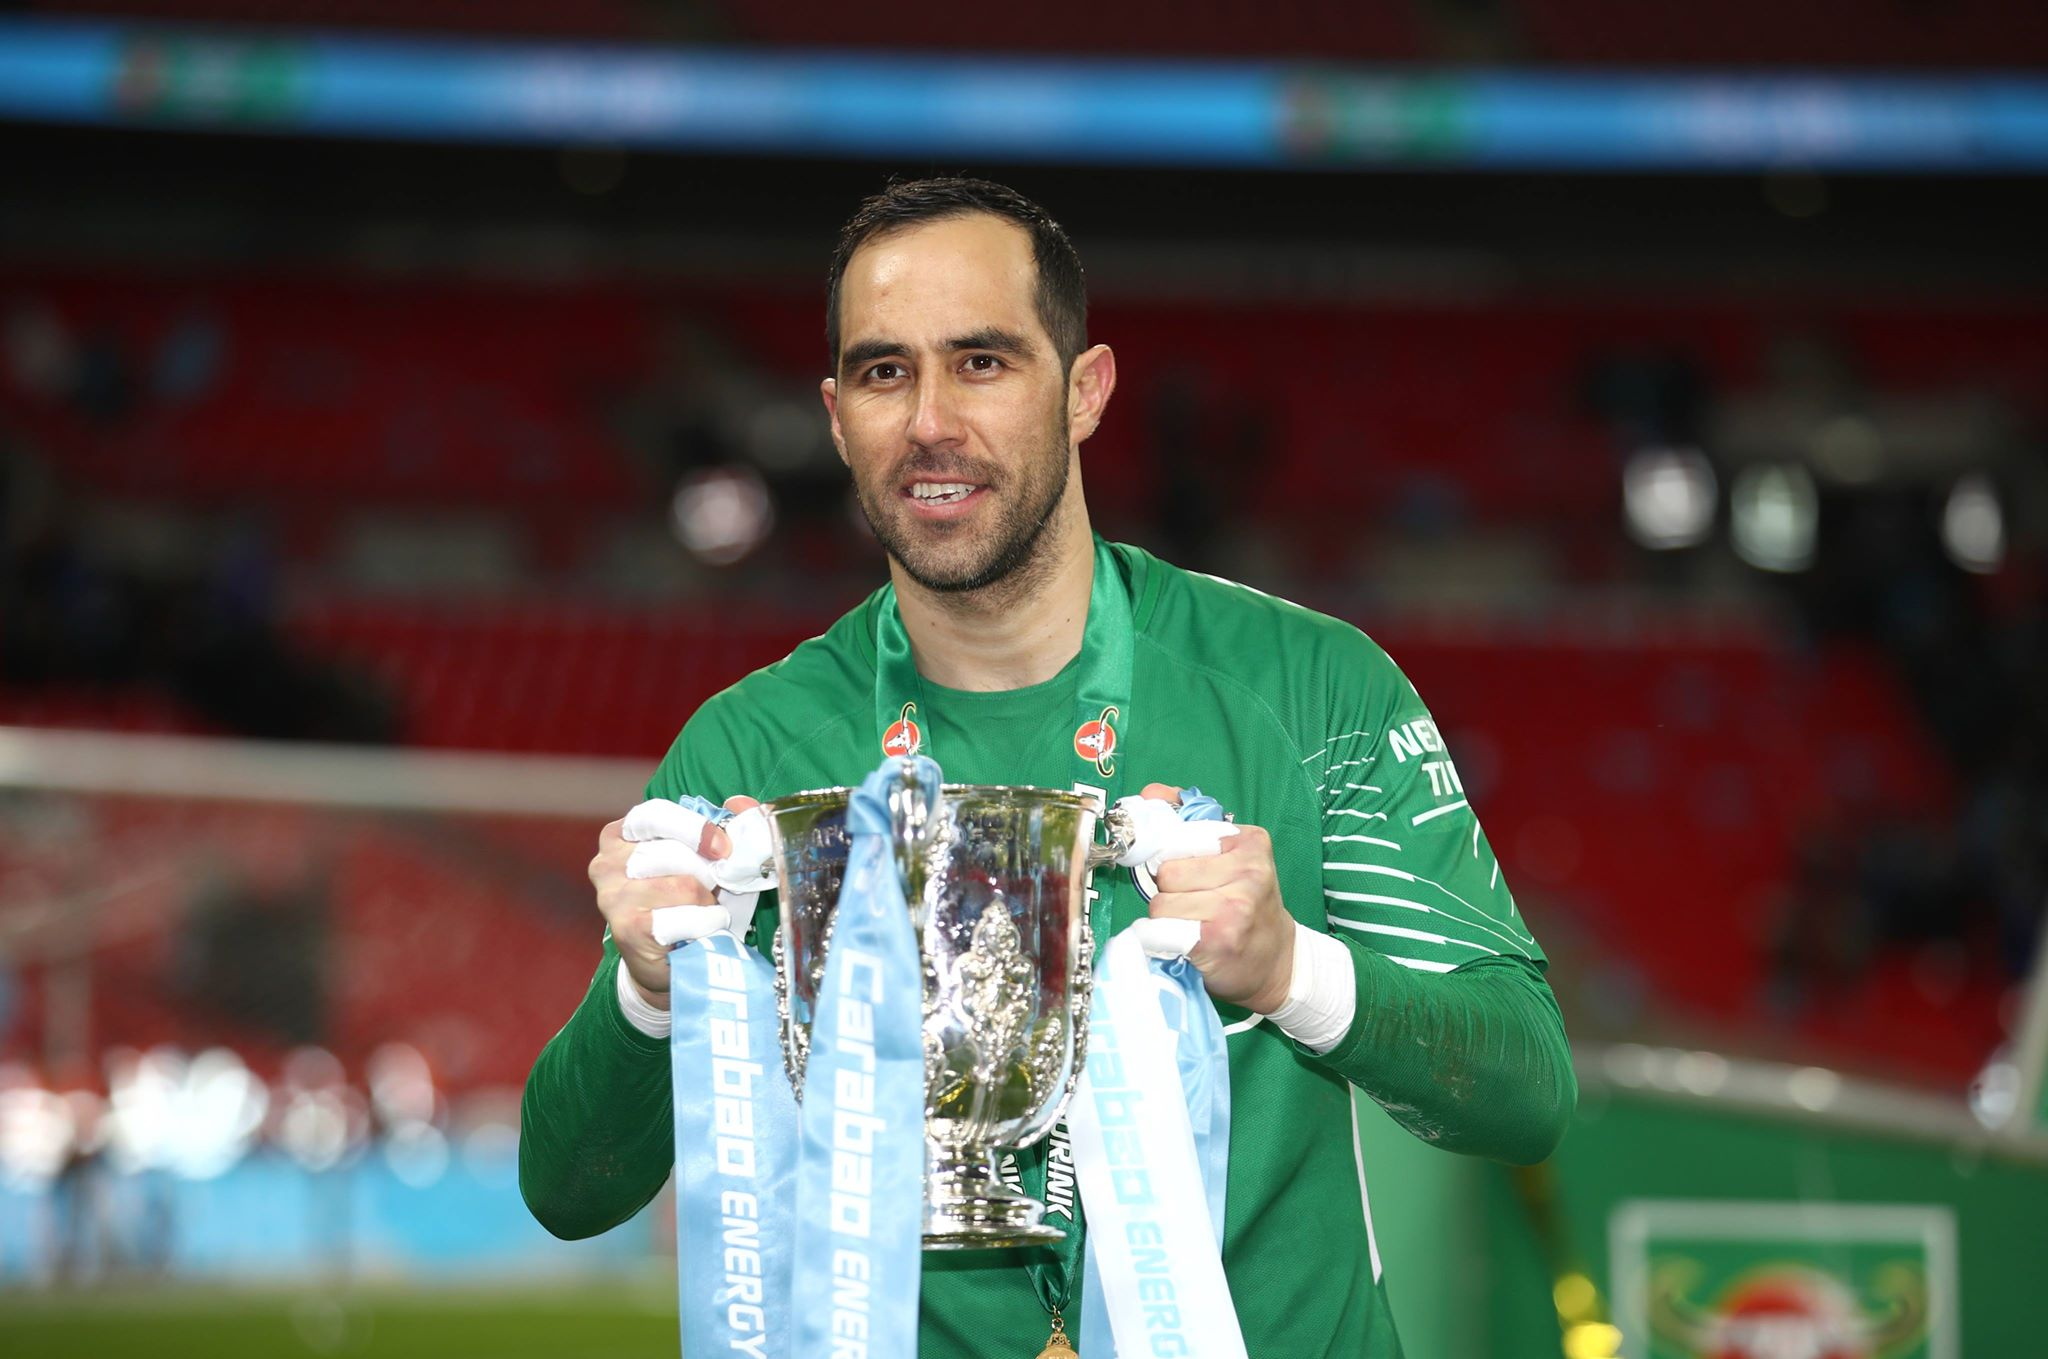 Claudio Bravo ruptures Achilles tendon at Manchester City training